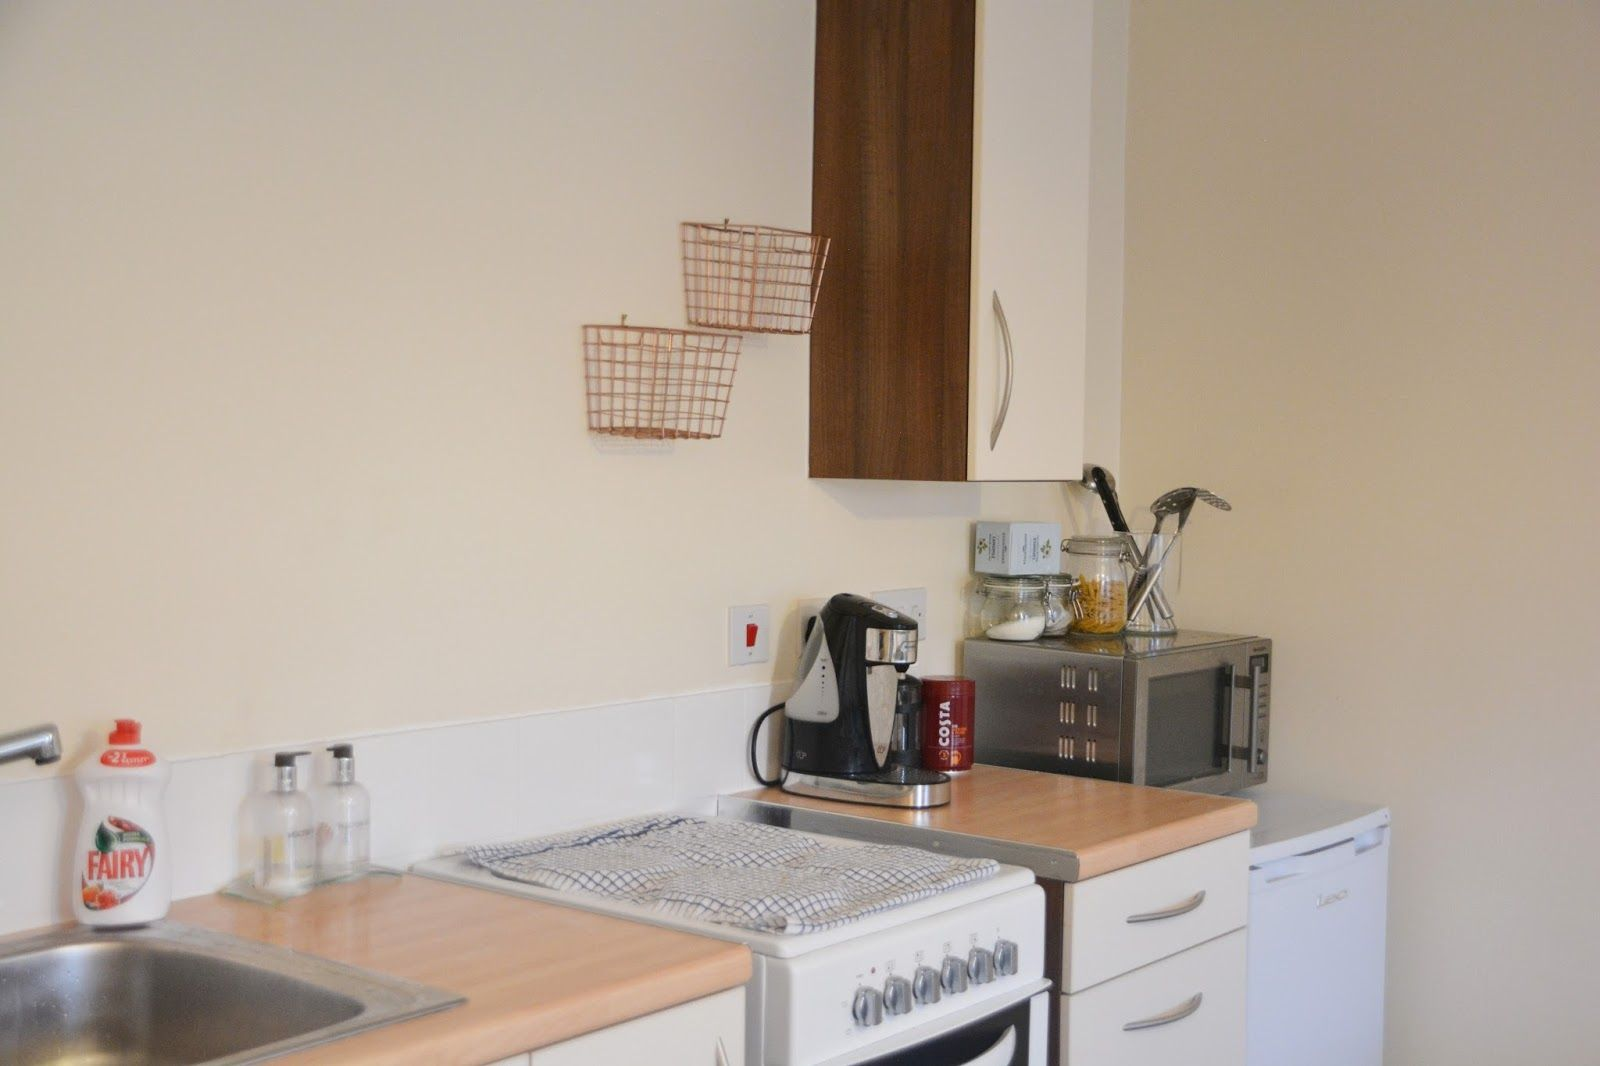 My Kitchen Makeover With D-C-Fix Part 1- From The Begining ...